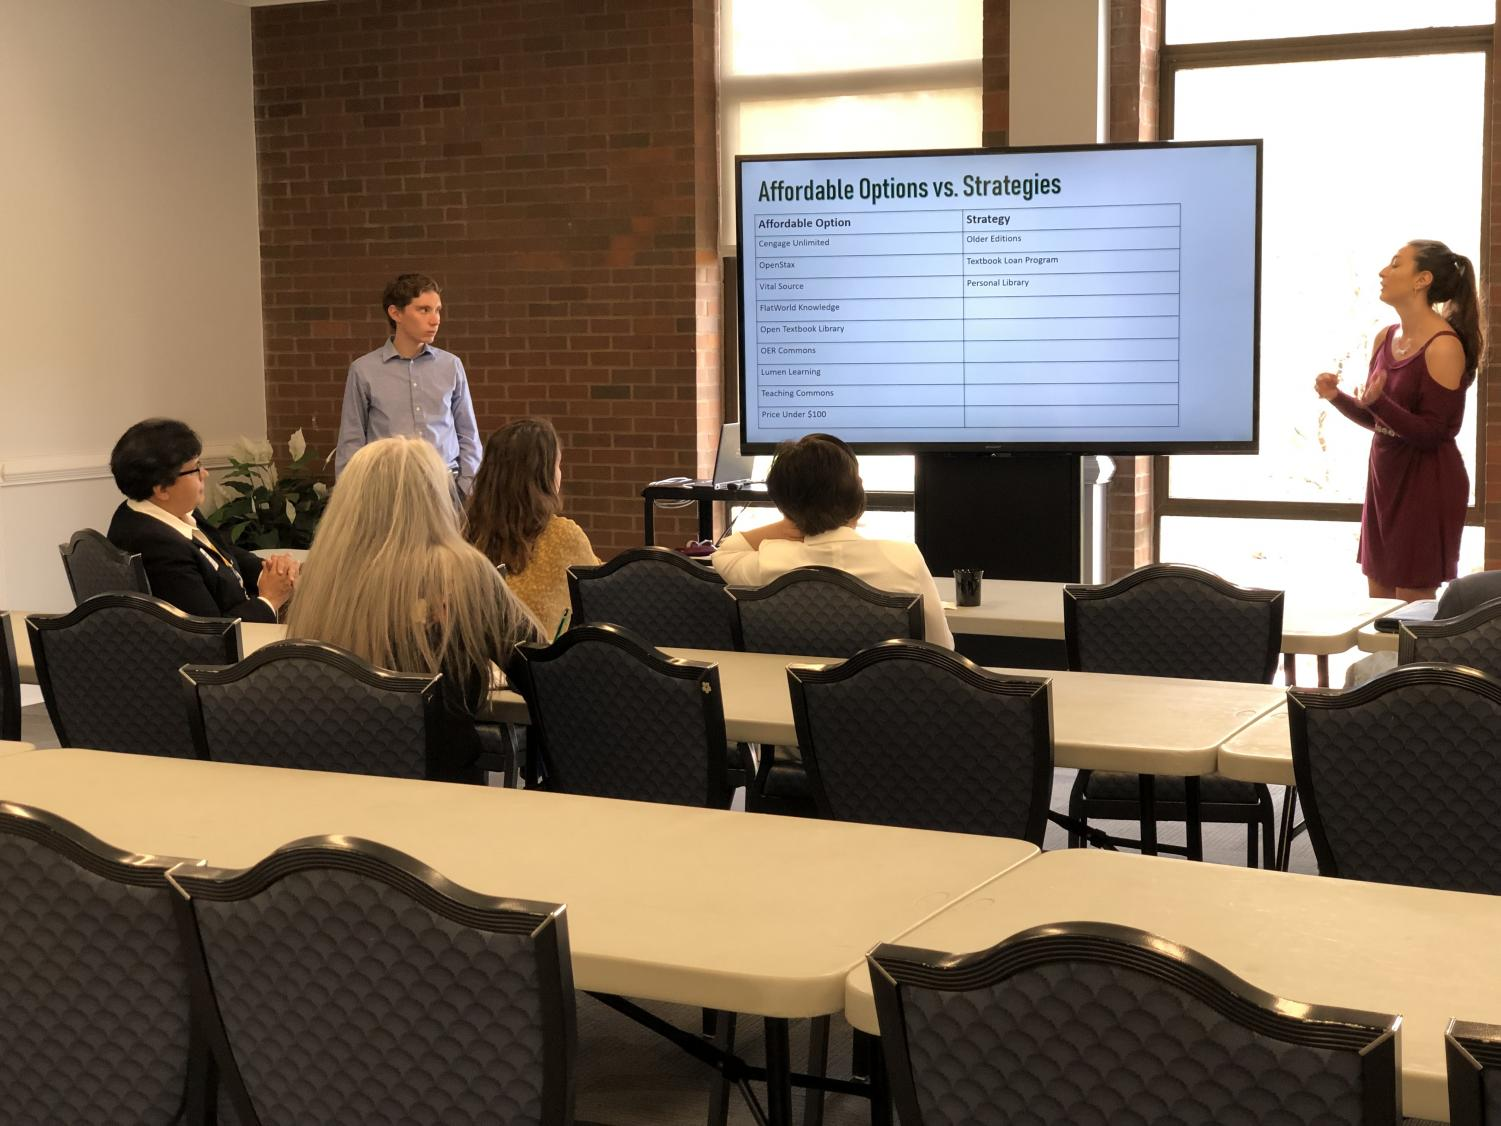 Student Body President Hunter Barclay and Student Body Vice President Hannah Petracca present information about affordable options and strategies during an Affordable Education 101 Material Training in the Shawkey Room of the Memorial Student Center Thursday.